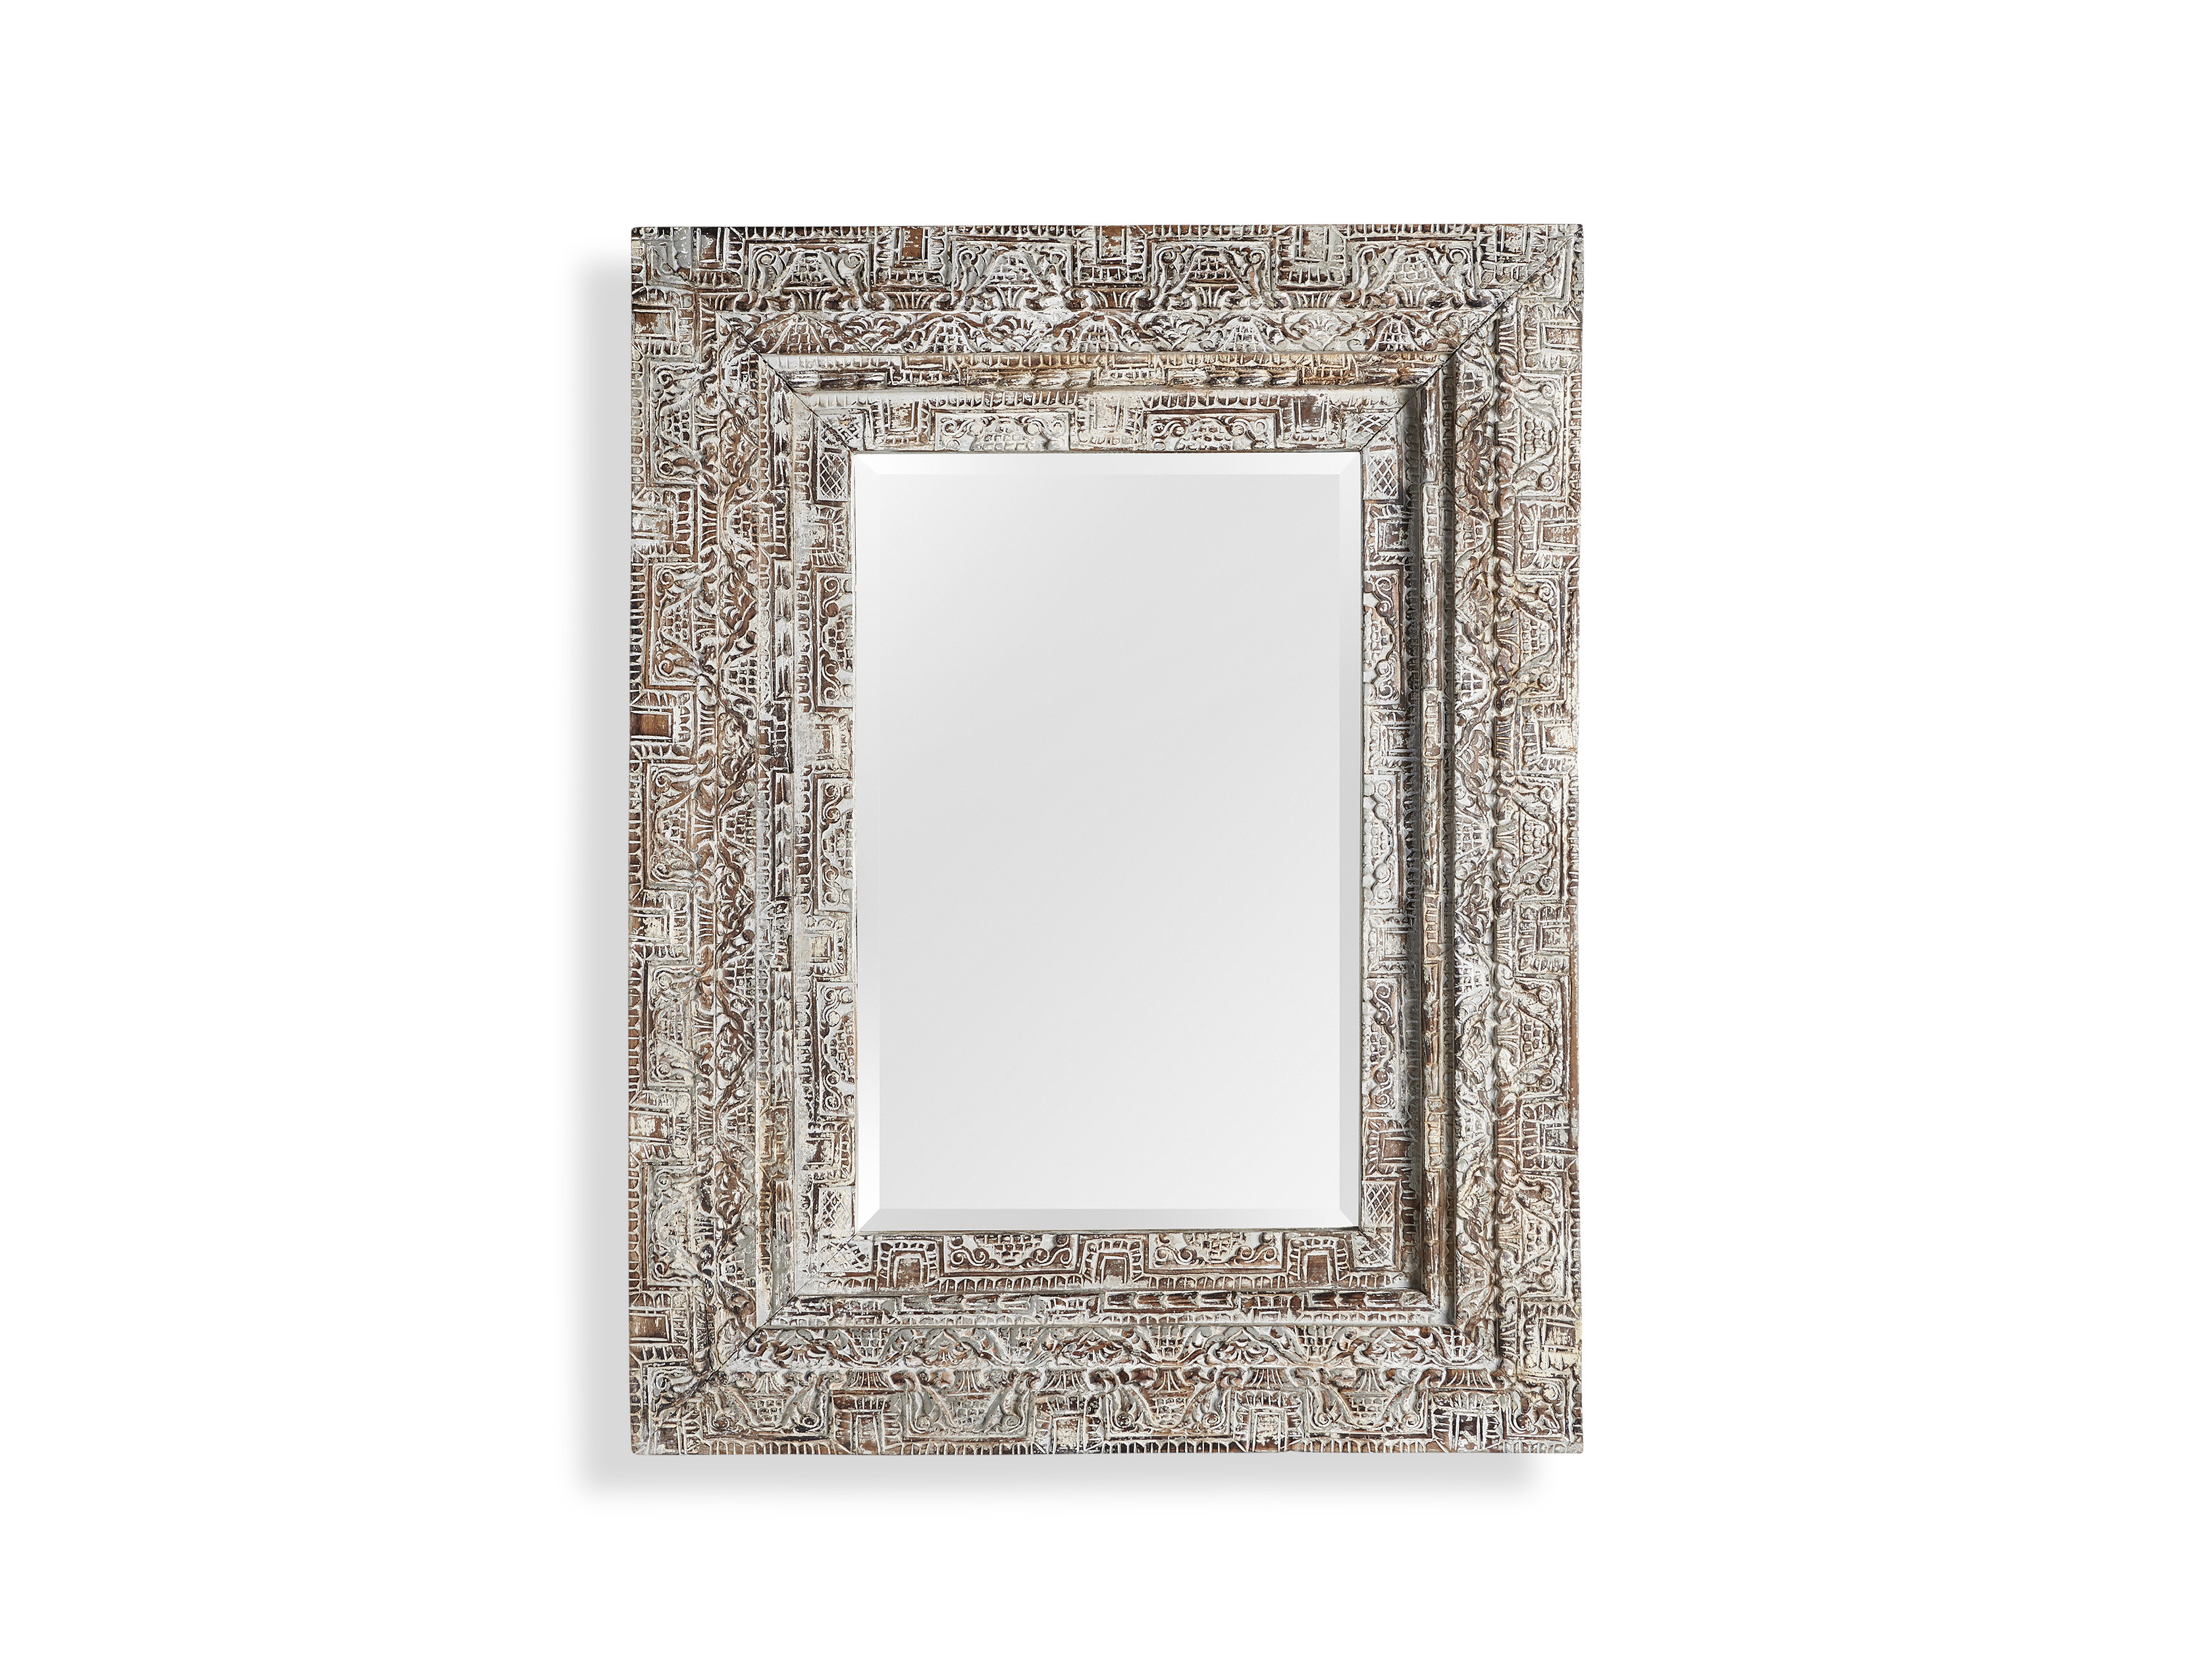 arhaus wall vase of bharati wall mirror arhaus furniture throughout product largestandard 65653d024